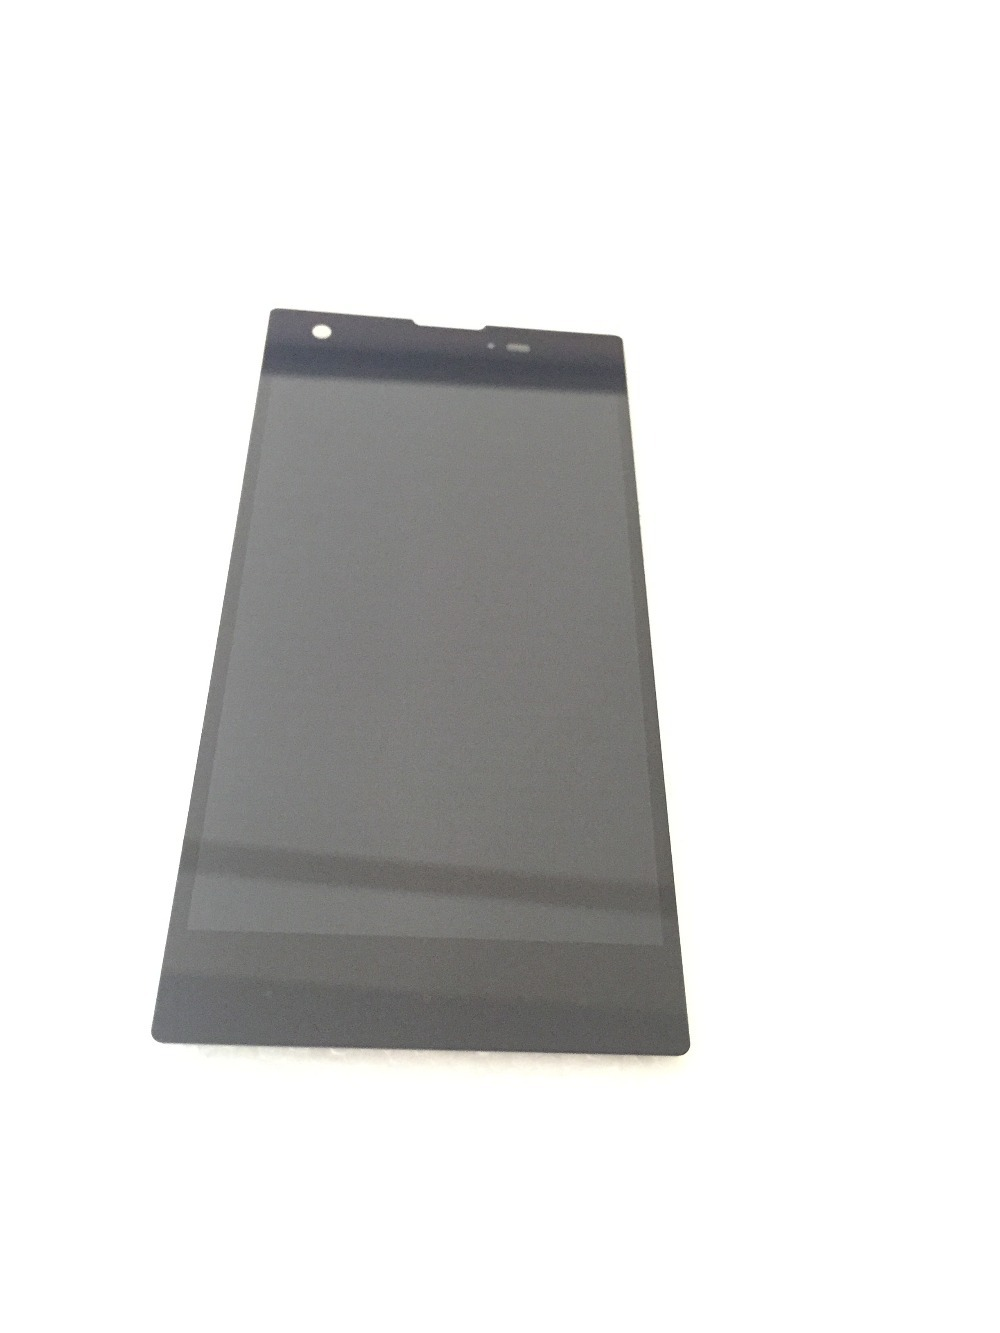 ФОТО Warranty For FLY tornado one IQ4511 LCD Screen with touch screen digitizer Fly IQ4511 Octa Tornado One assembly free shipping